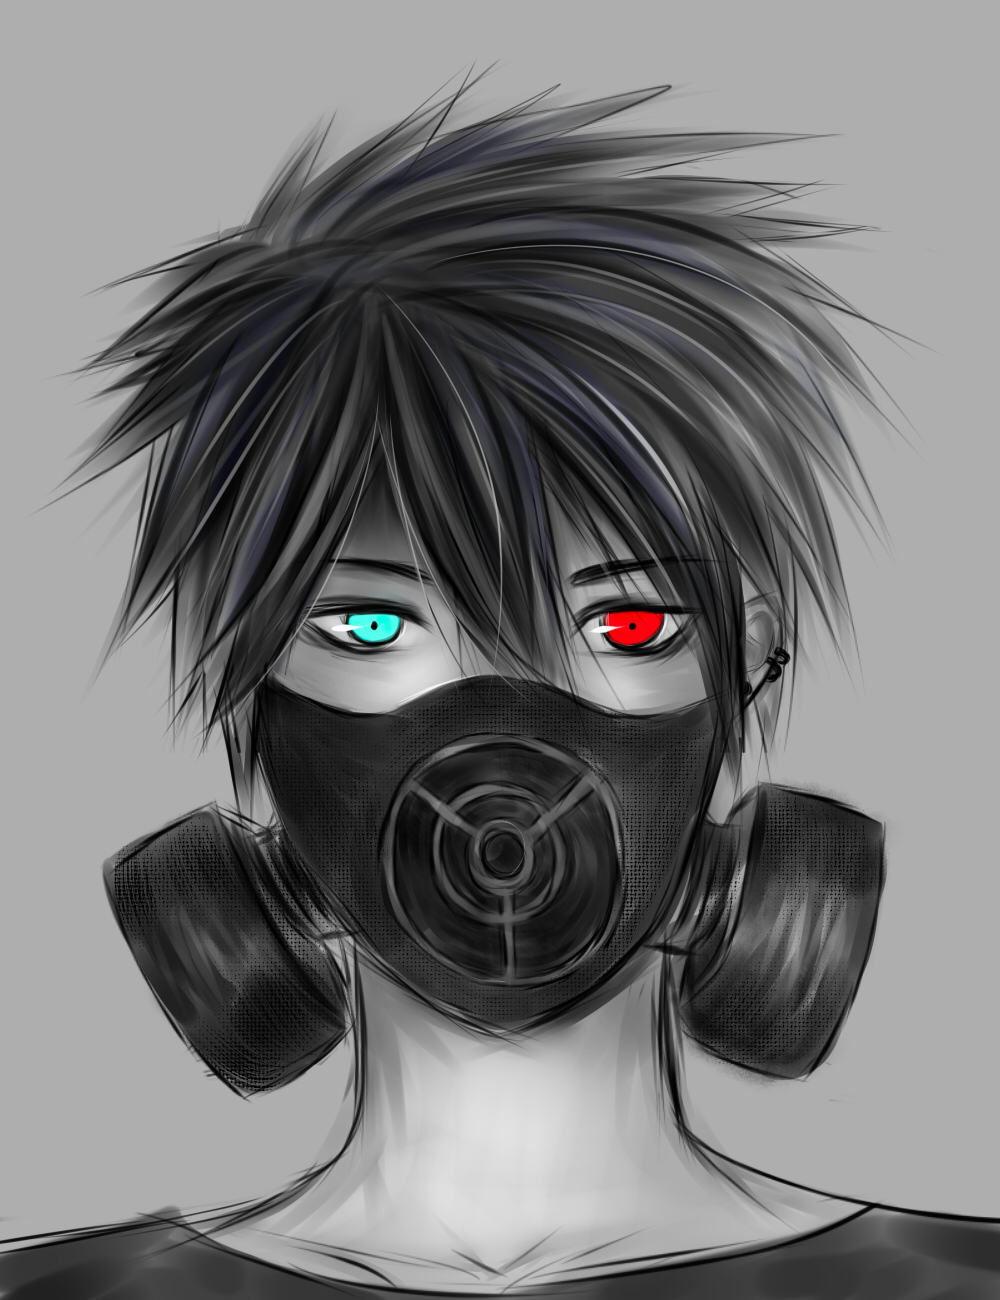 Anime Manga Boy With Gasmask By Kisunari On DeviantArt